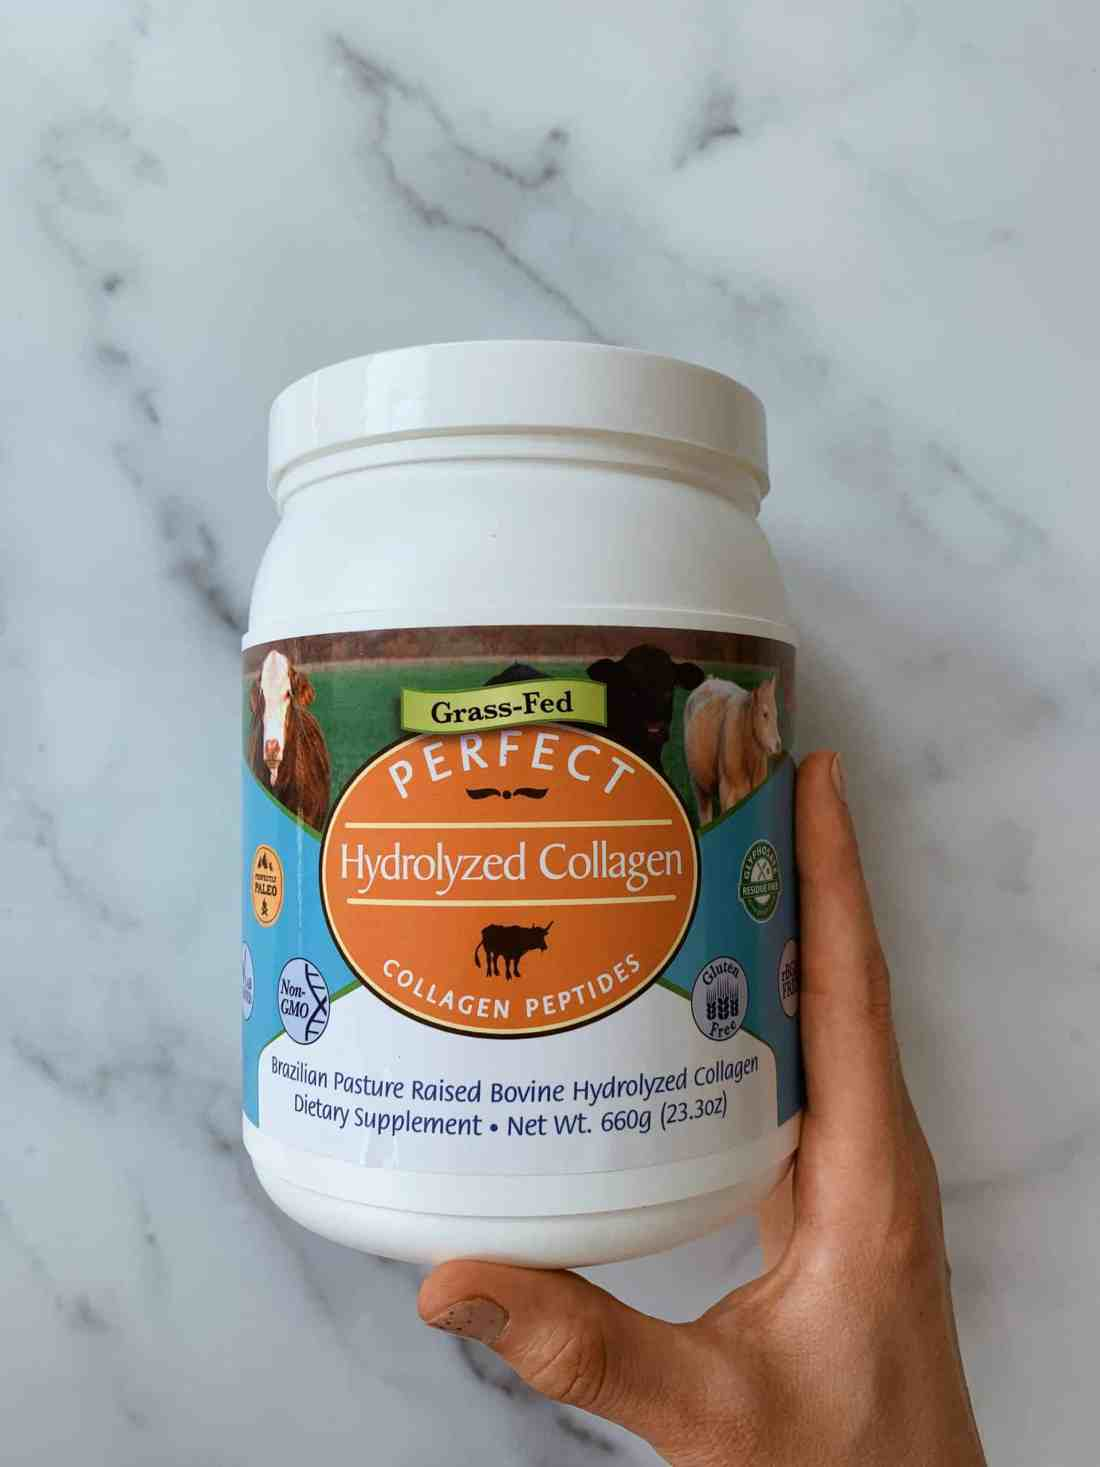 A container of Perfect Hydrolyzed Collagen.